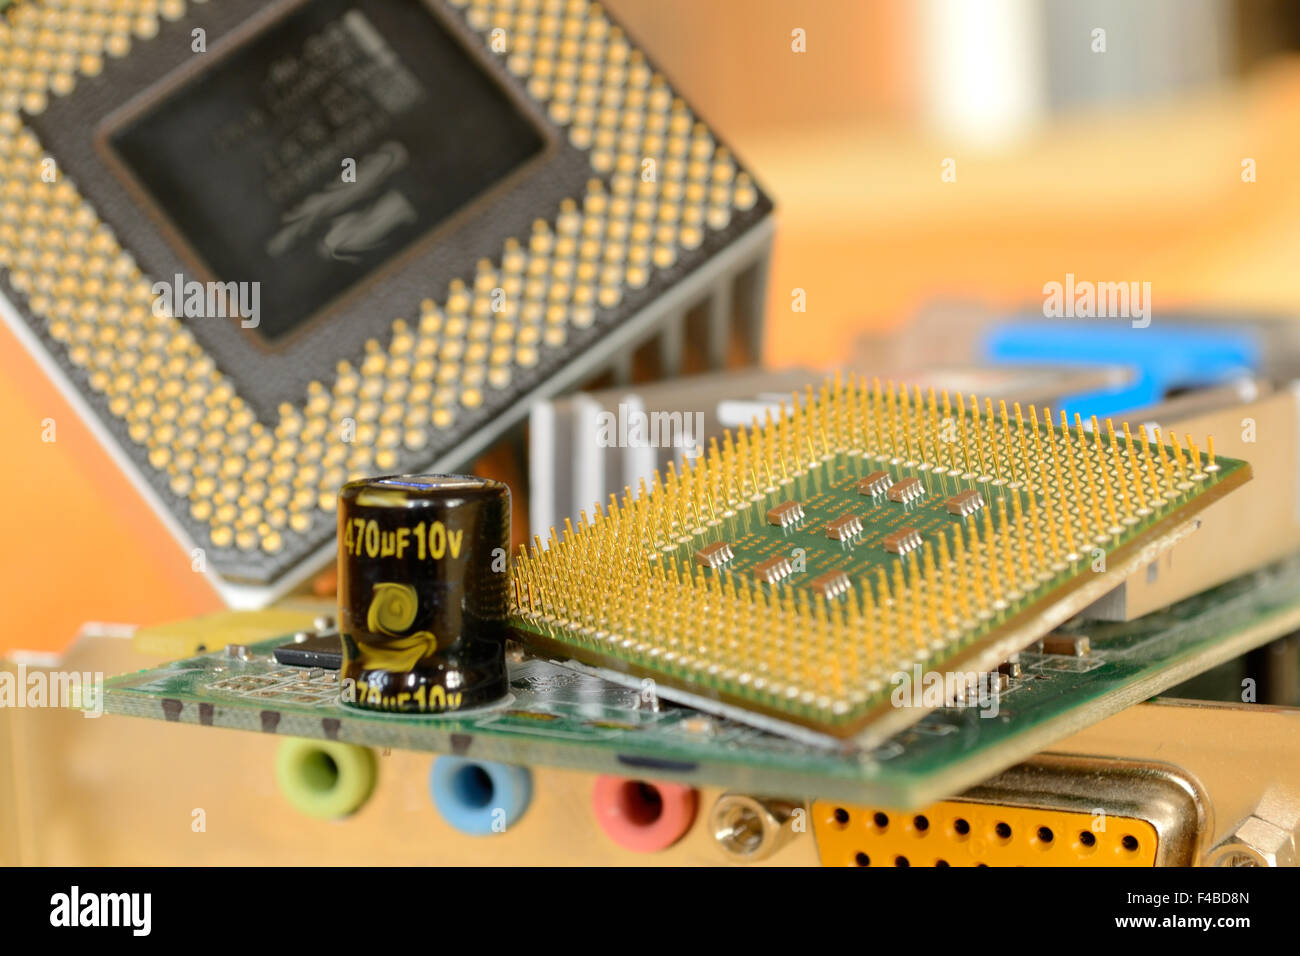 PC processor and plug-in cards - Hardware Stock Photo